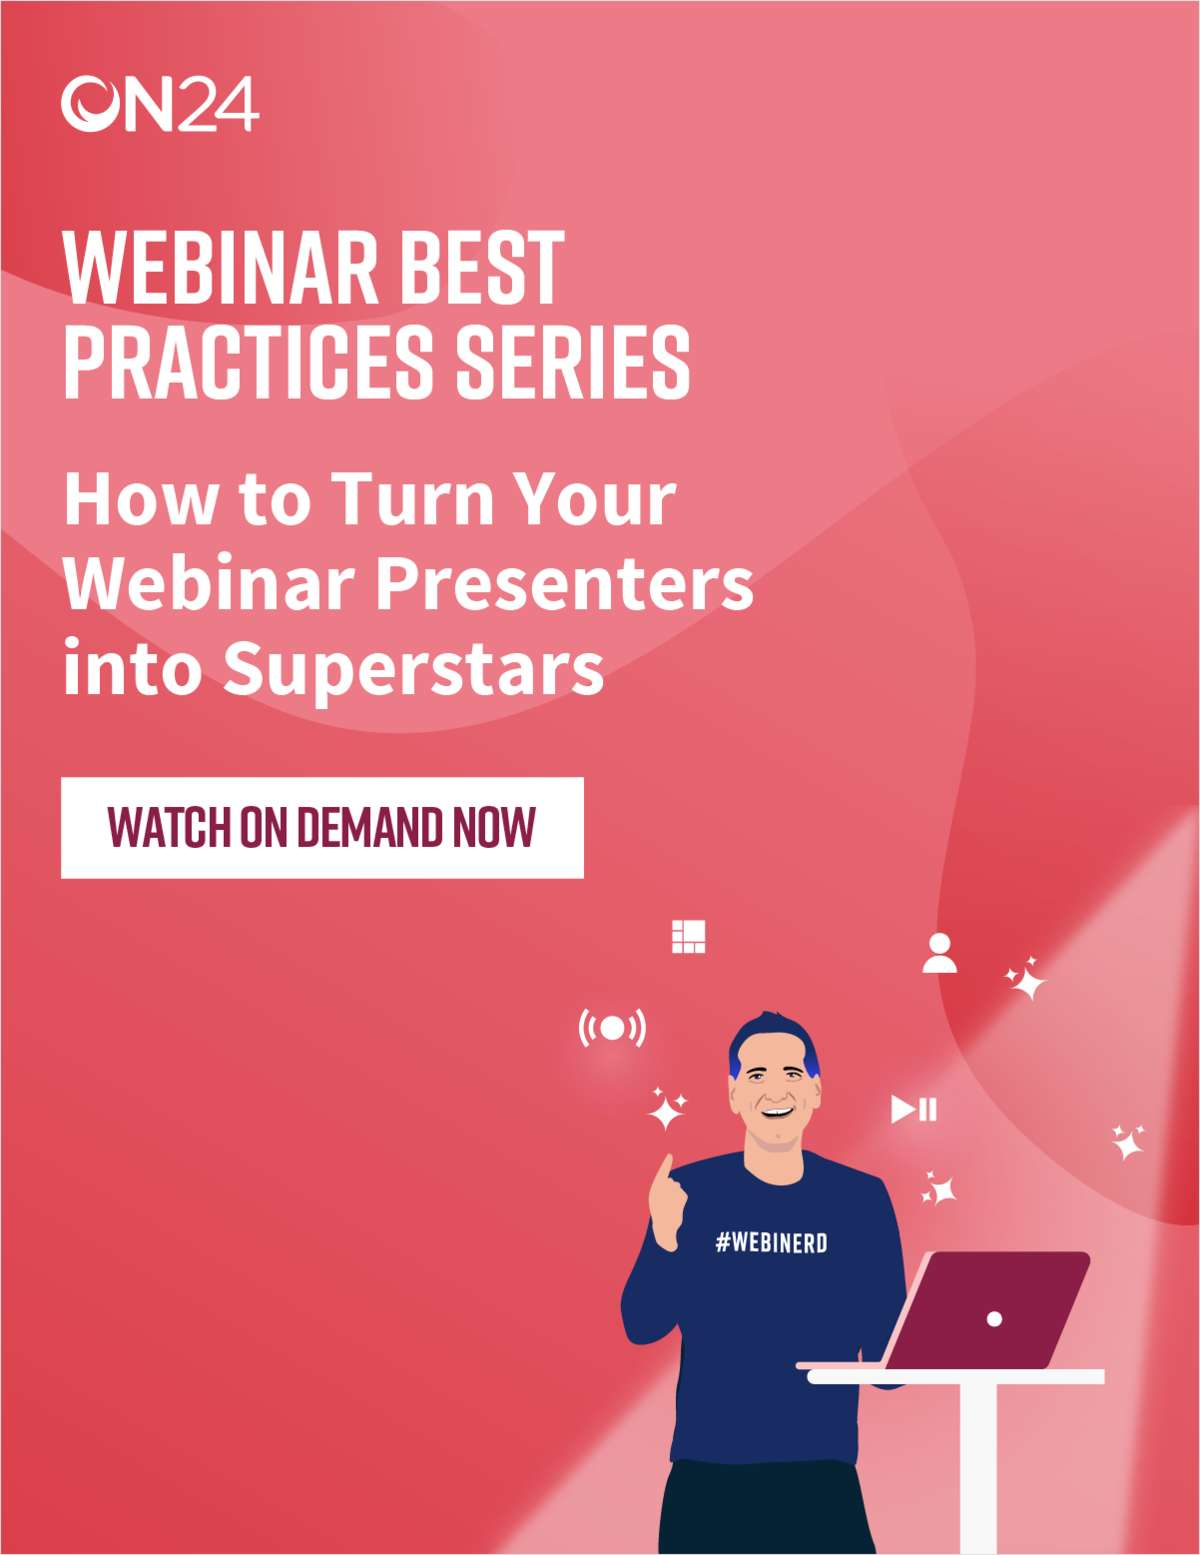 How to Turn Your Webinar Presenters into Superstars